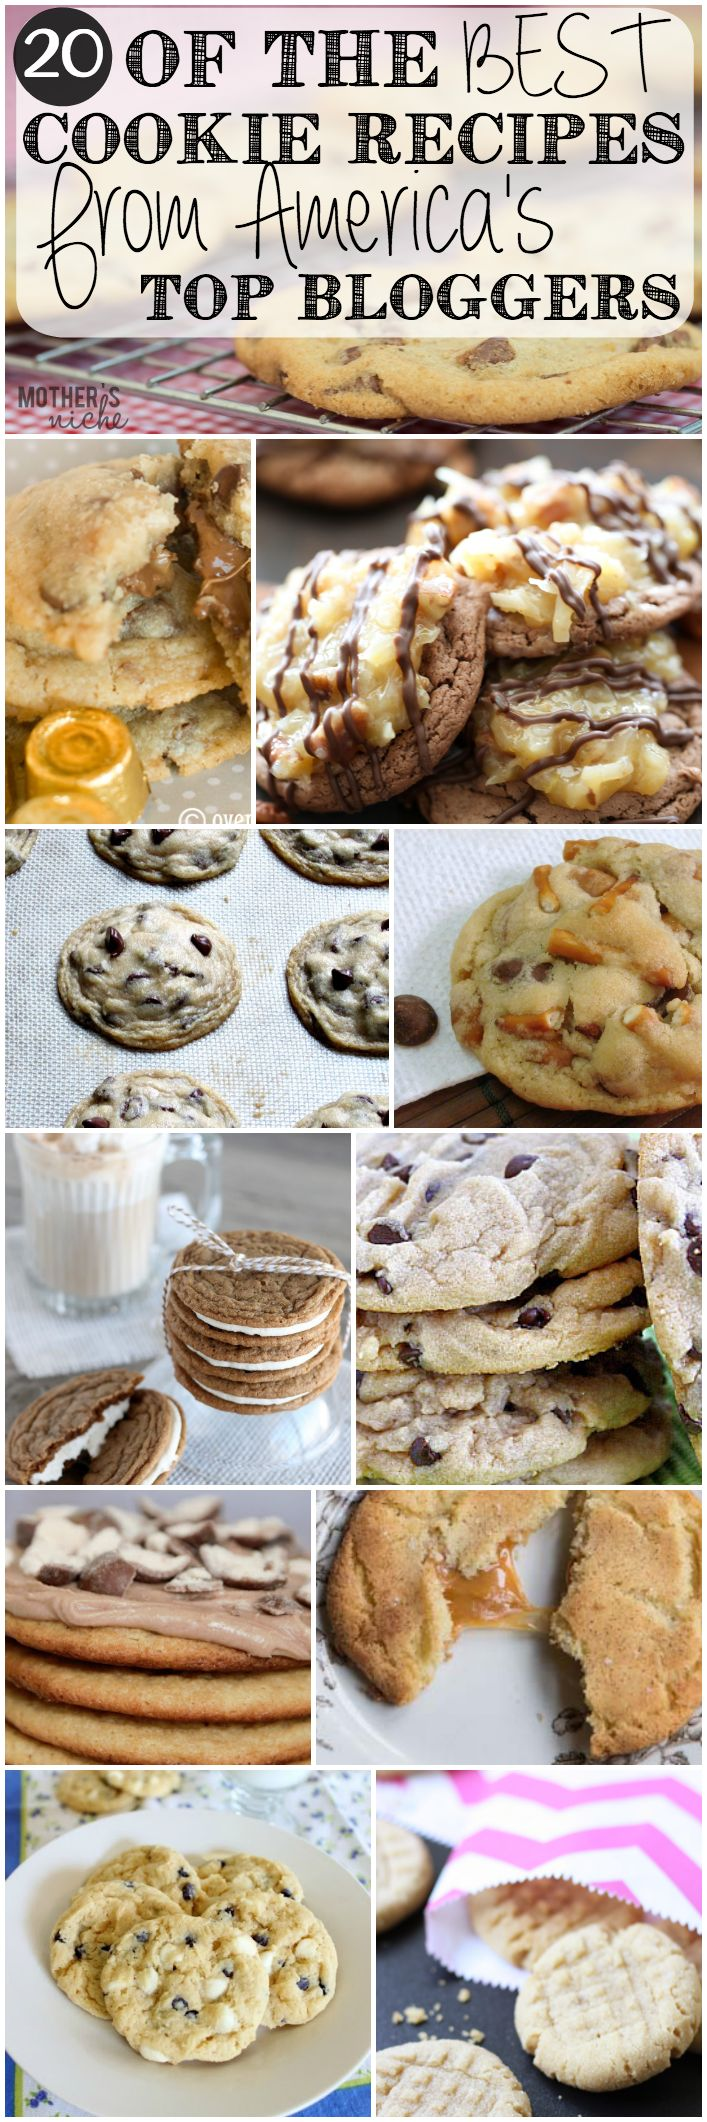 20 of the BEST Cookie Recipes on the Web!